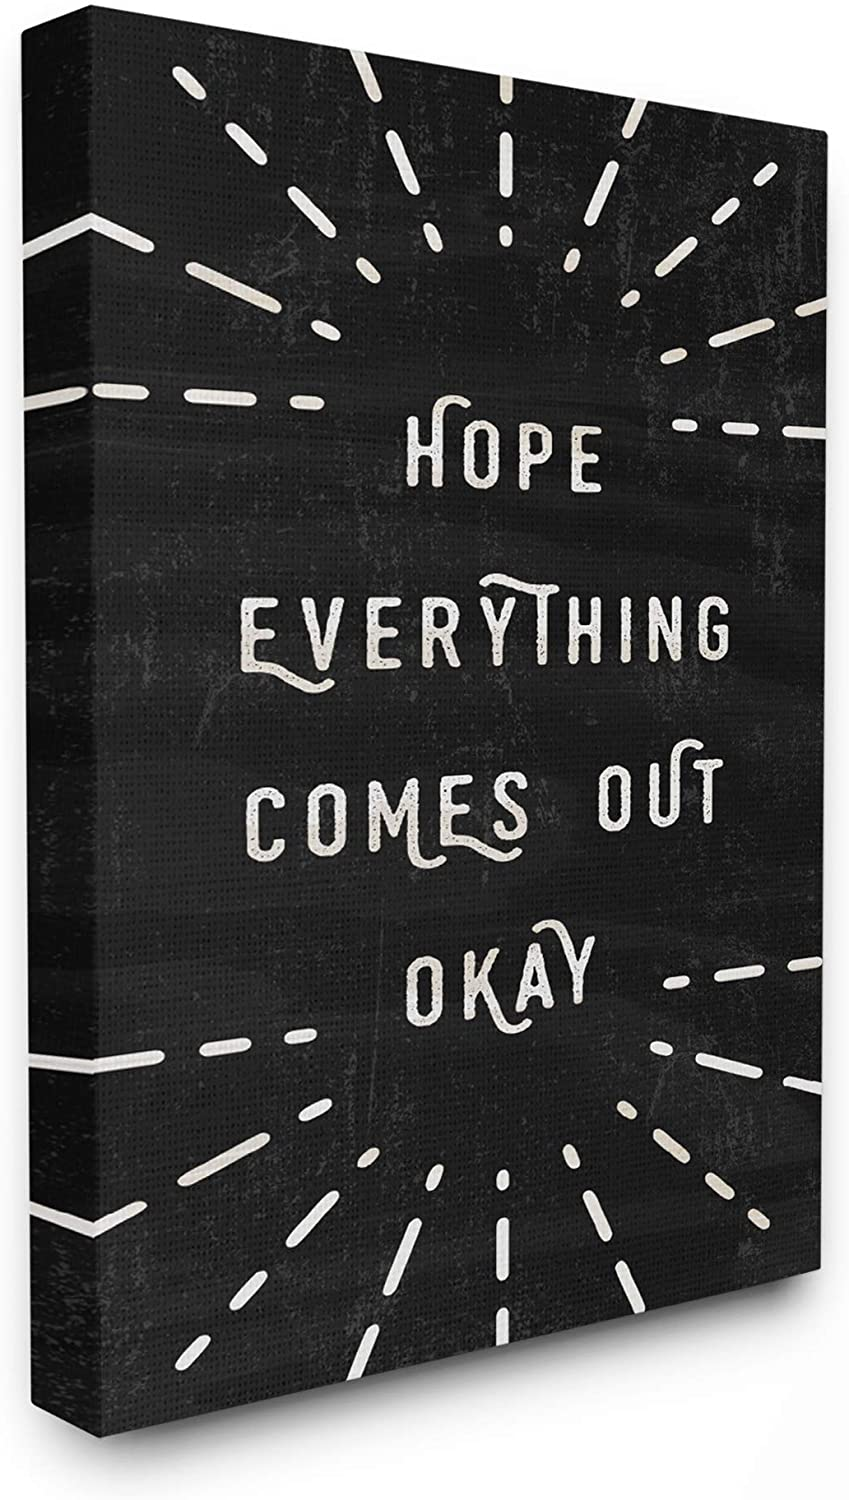 The Stupell Home Decor Black and White Modern Type Hope Everything Comes Out Okay Stretched Canvas Wall Art, 16x20, Multicolor